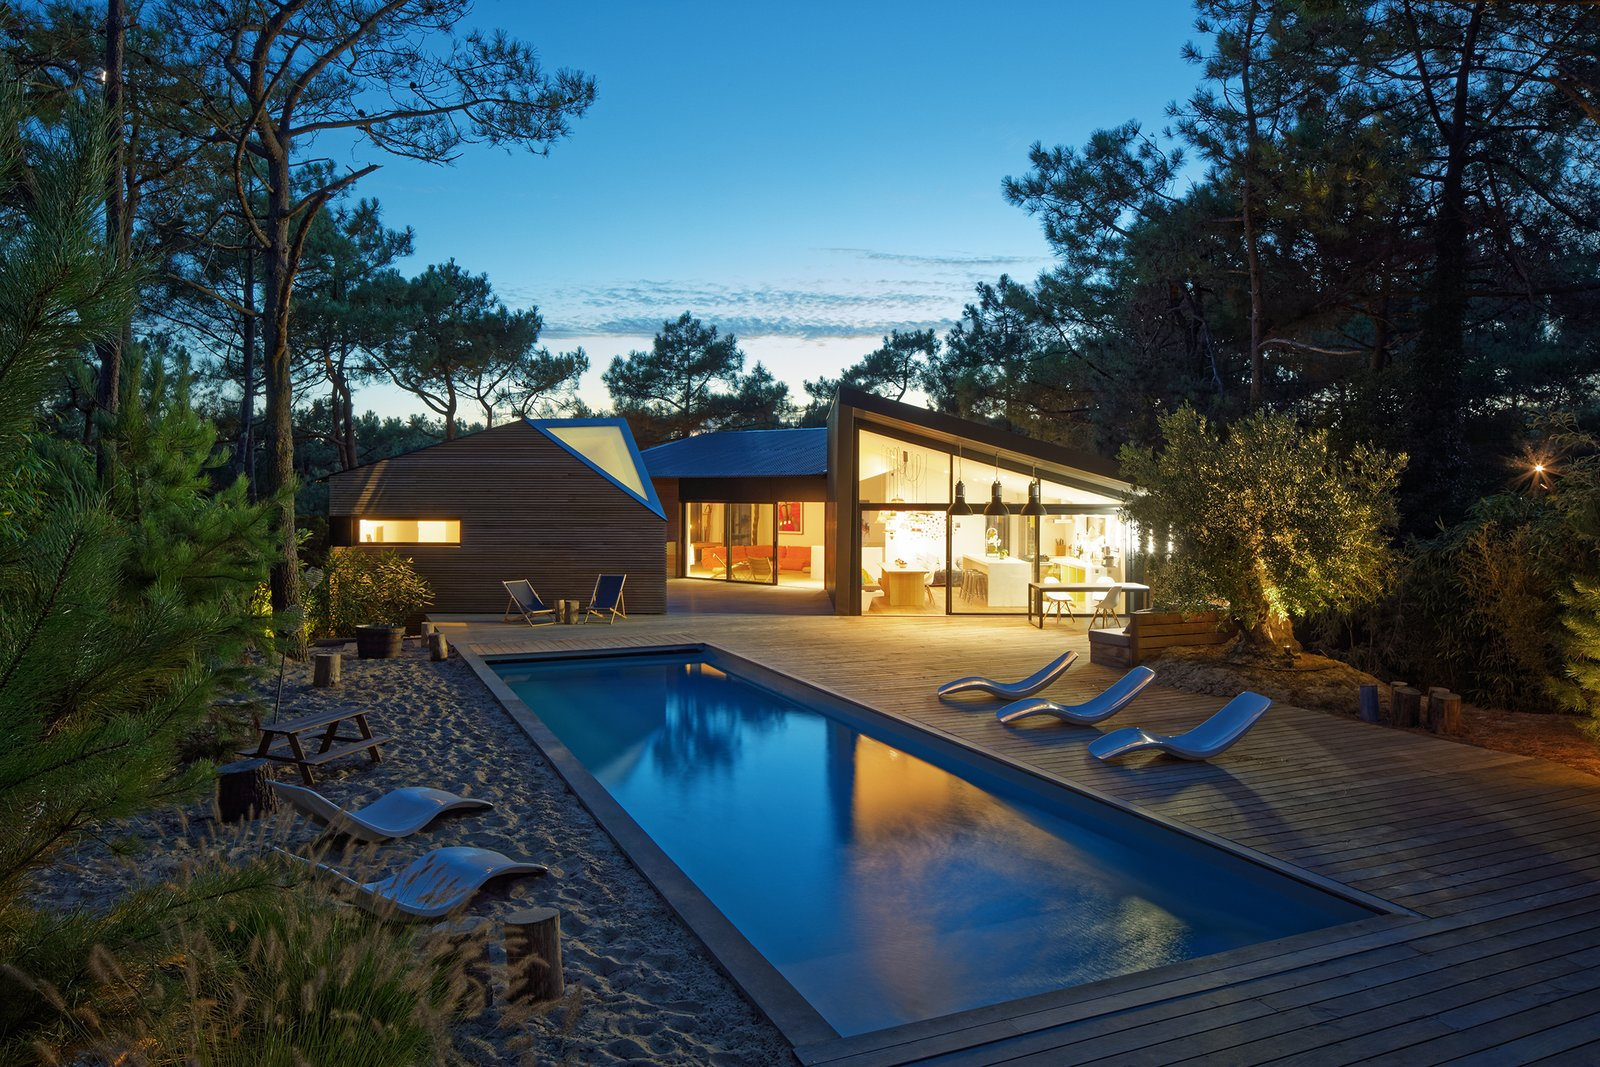 At sunset, the holiday home glows like a shining lantern set within the forest.